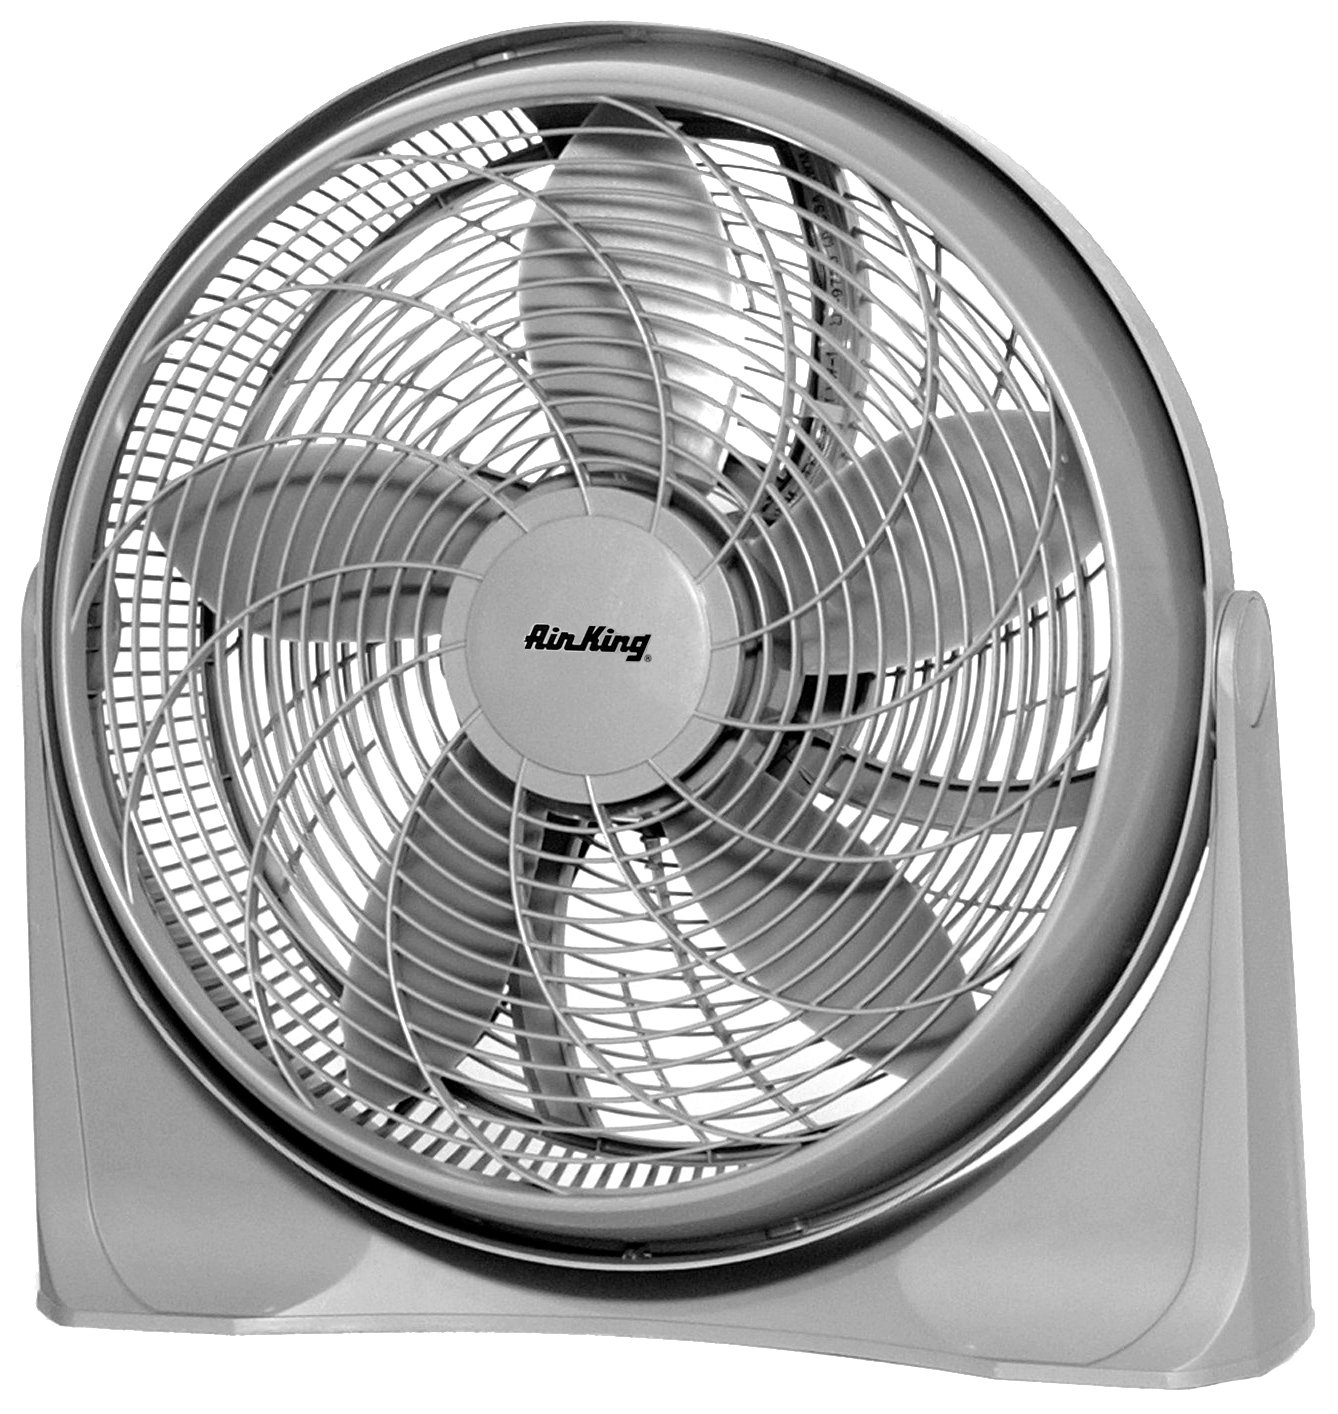 Air King 9500 20-Inch 3-Speed Commercial Grade Deluxe Pivot Fan with 2,390-CFM, 1/22-Horsepower, Grey Finish